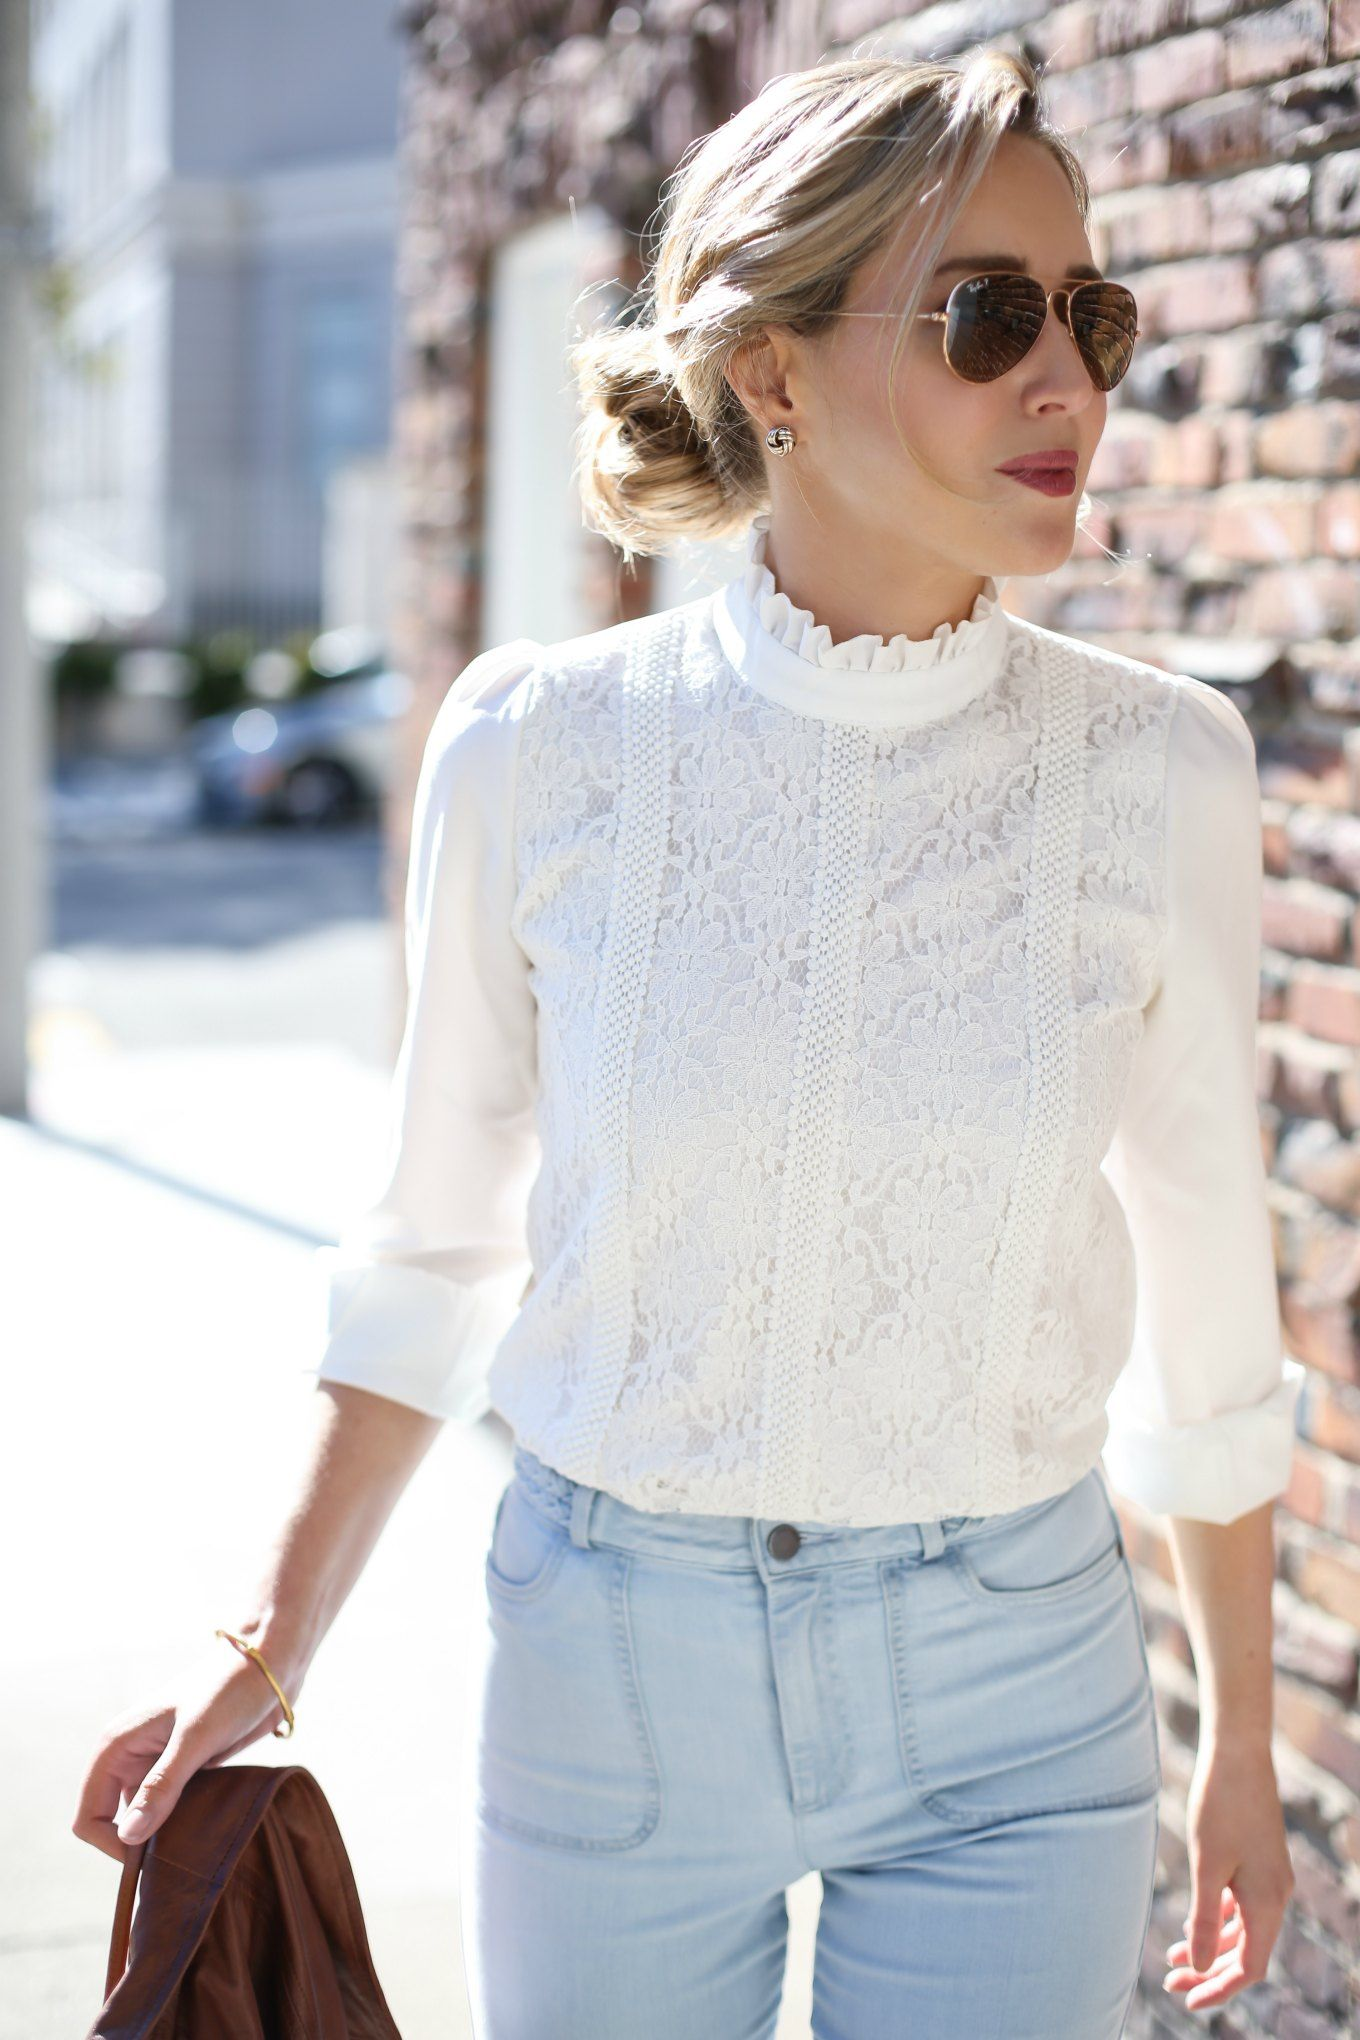 73e9032c781 how to wear lace tops - Over your favorite pair of jeans  Lace and jeans is  an amazing outfit idea to wear everyday